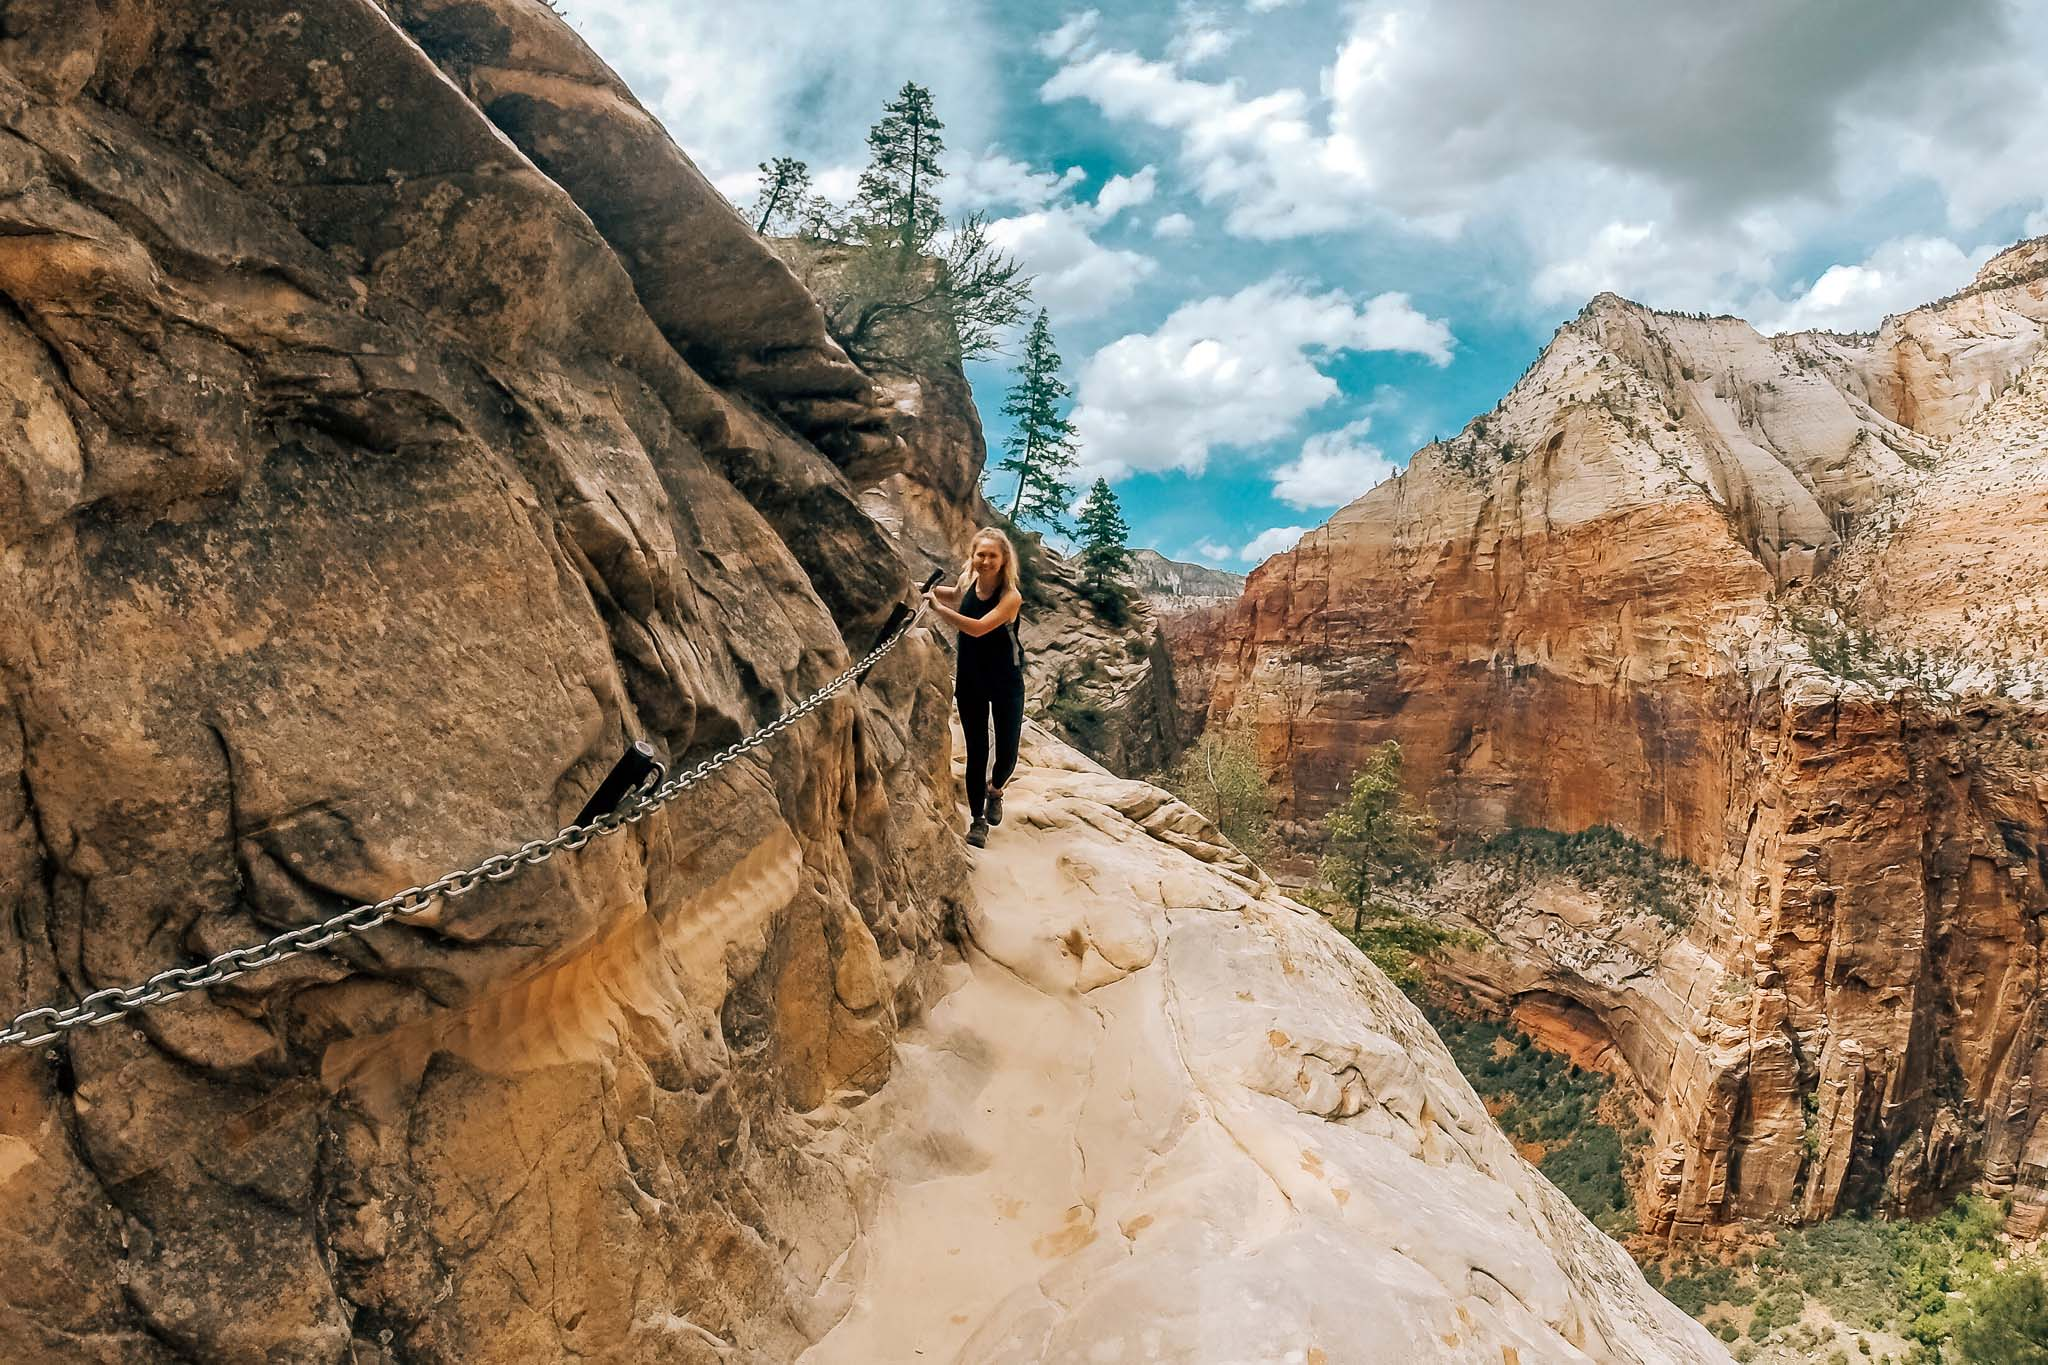 Hannah hiking at Zion National Park. She is holding onto a chain attached to the side of the mountain while overlooking a steep cliff.